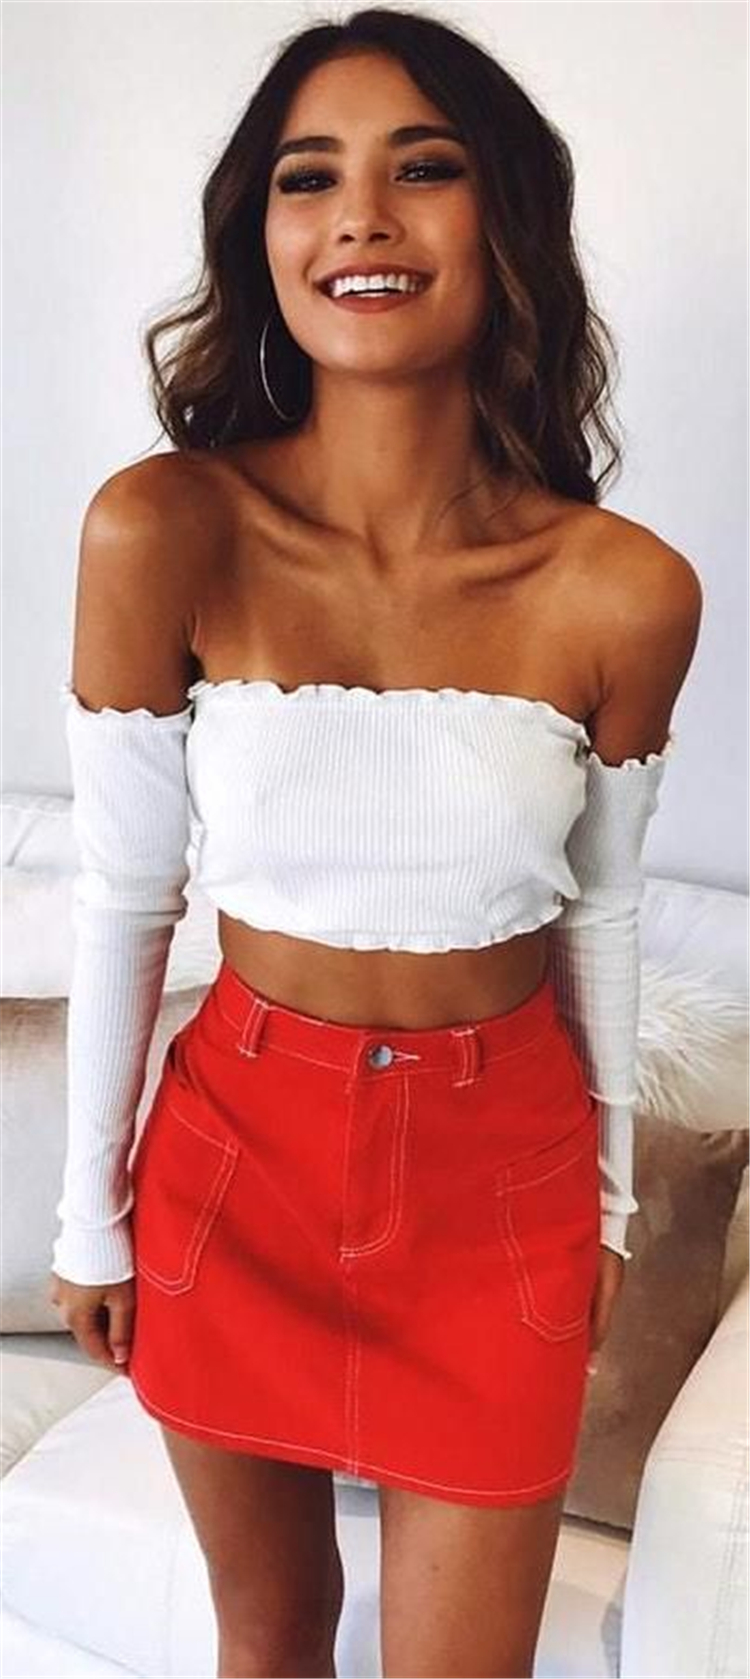 Stunning Summer Outfits With Mini Skirt You Would Love To Try This Summer; Summer Outfits; Summer Outfits With Mini Skirt; Mini Skirt; Summer Mini Skirt; Outfits; Stunning Summer Outfits With Mini Skirt; Mini Skirt For Summer;